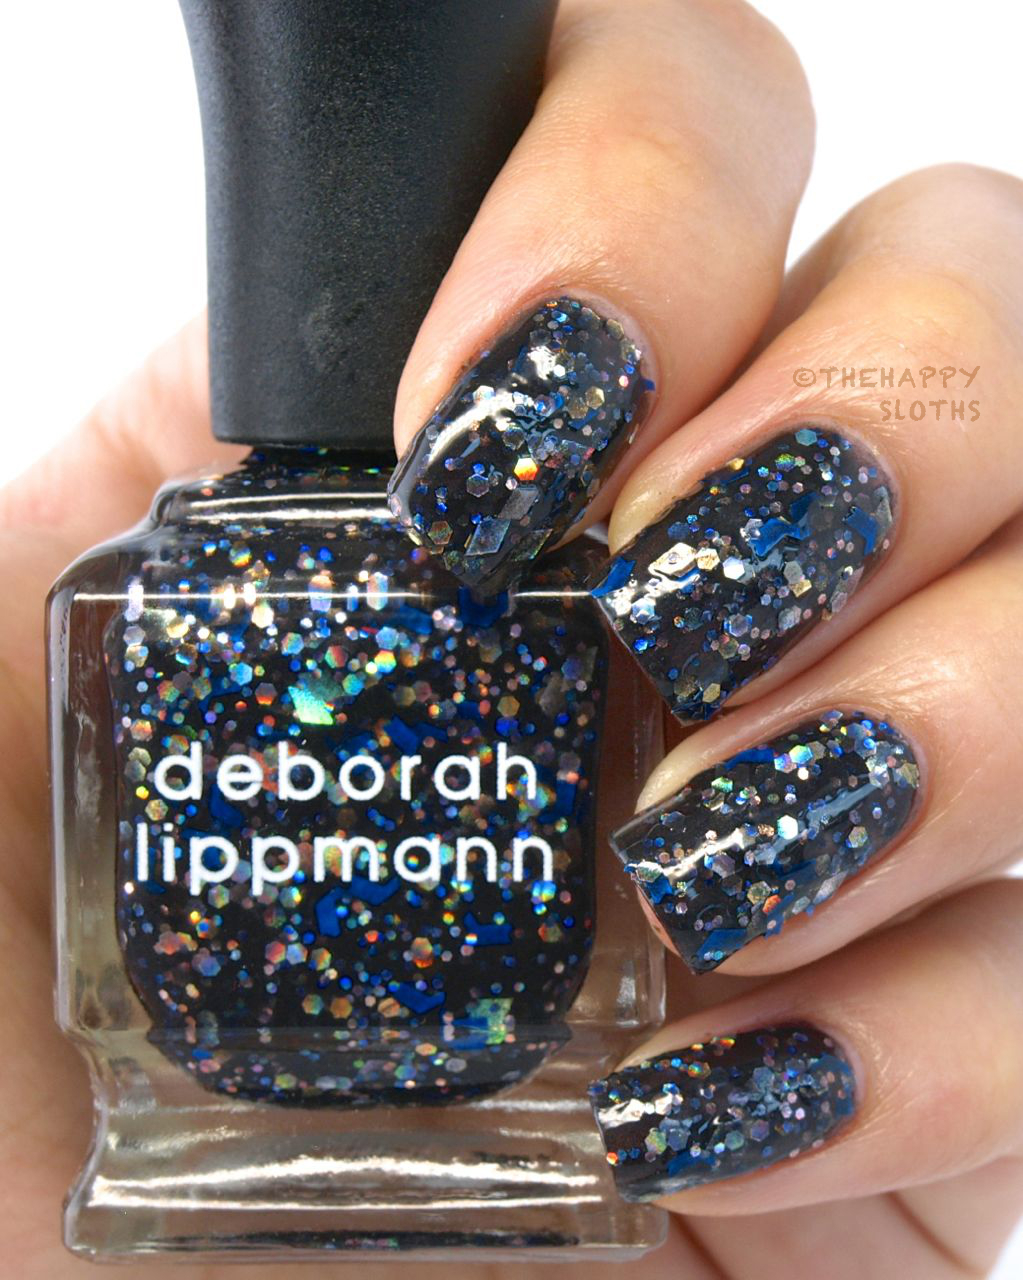 Deborah Lippmann Holiday 2014 Collection Magic Carpet Ride Review and Swatches